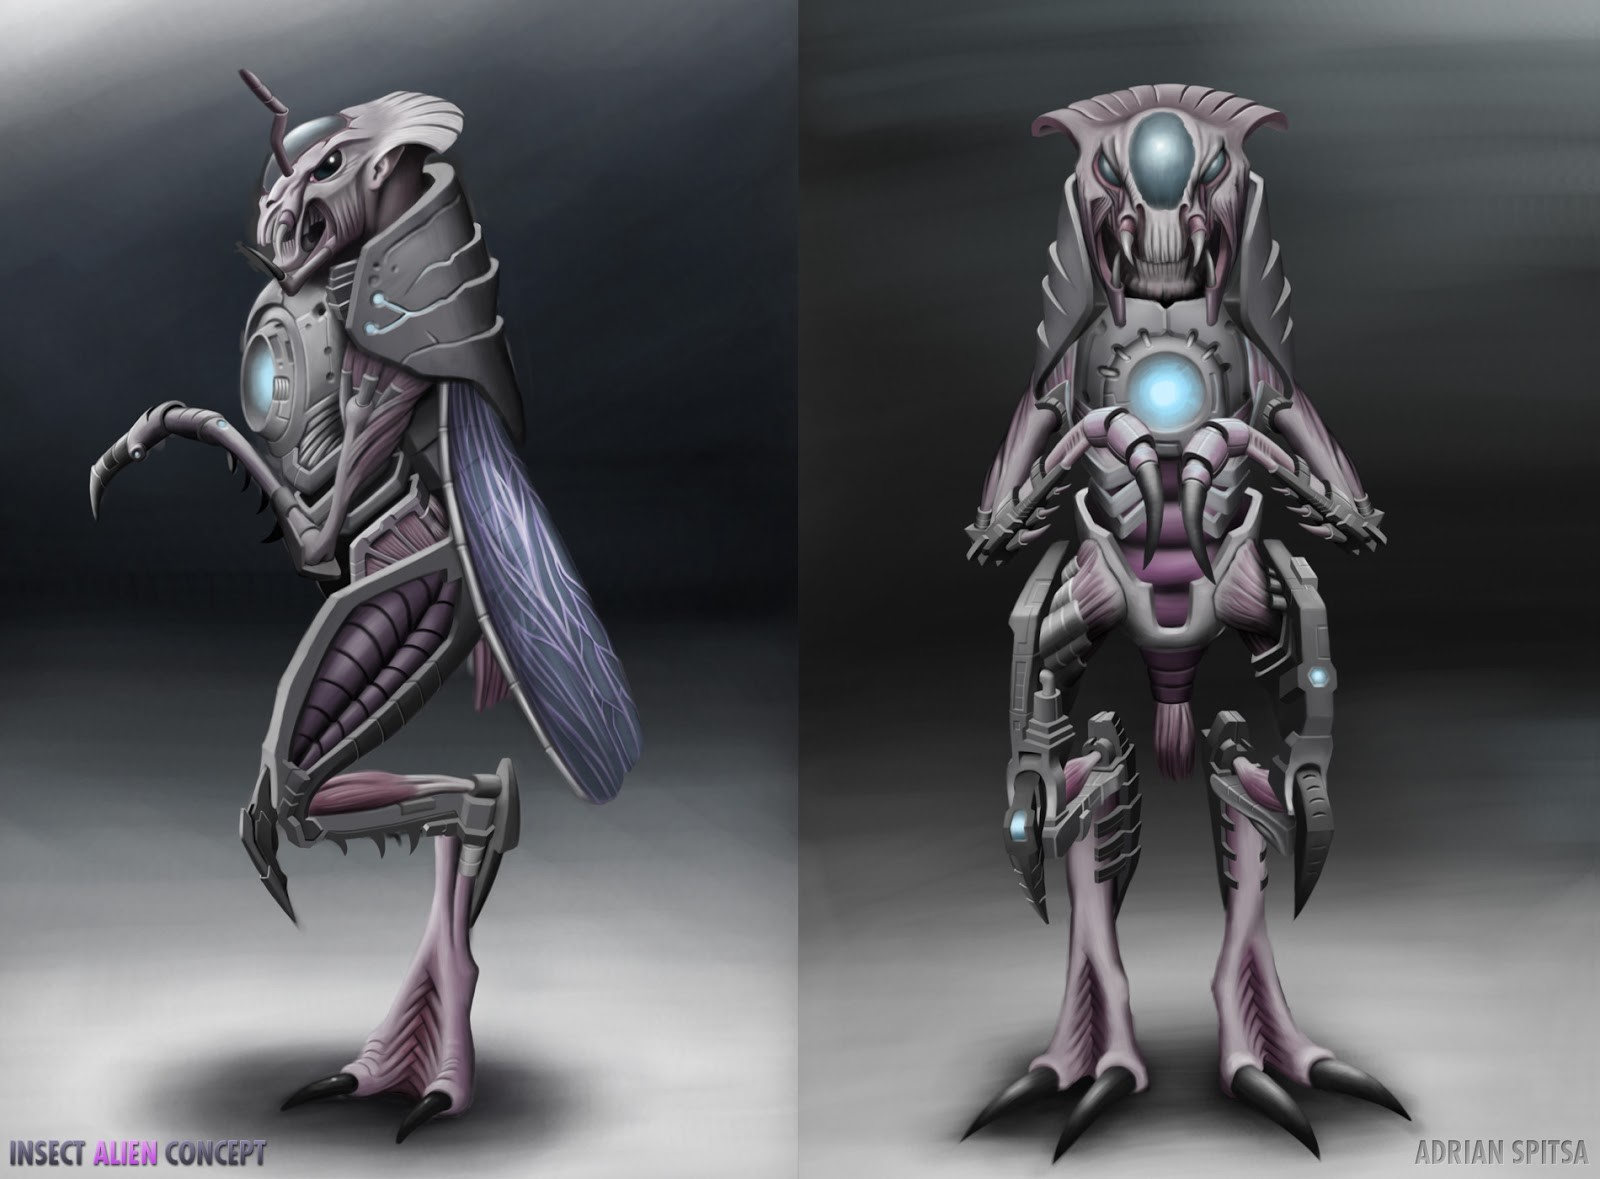 Adrian spitsa insect alien concept